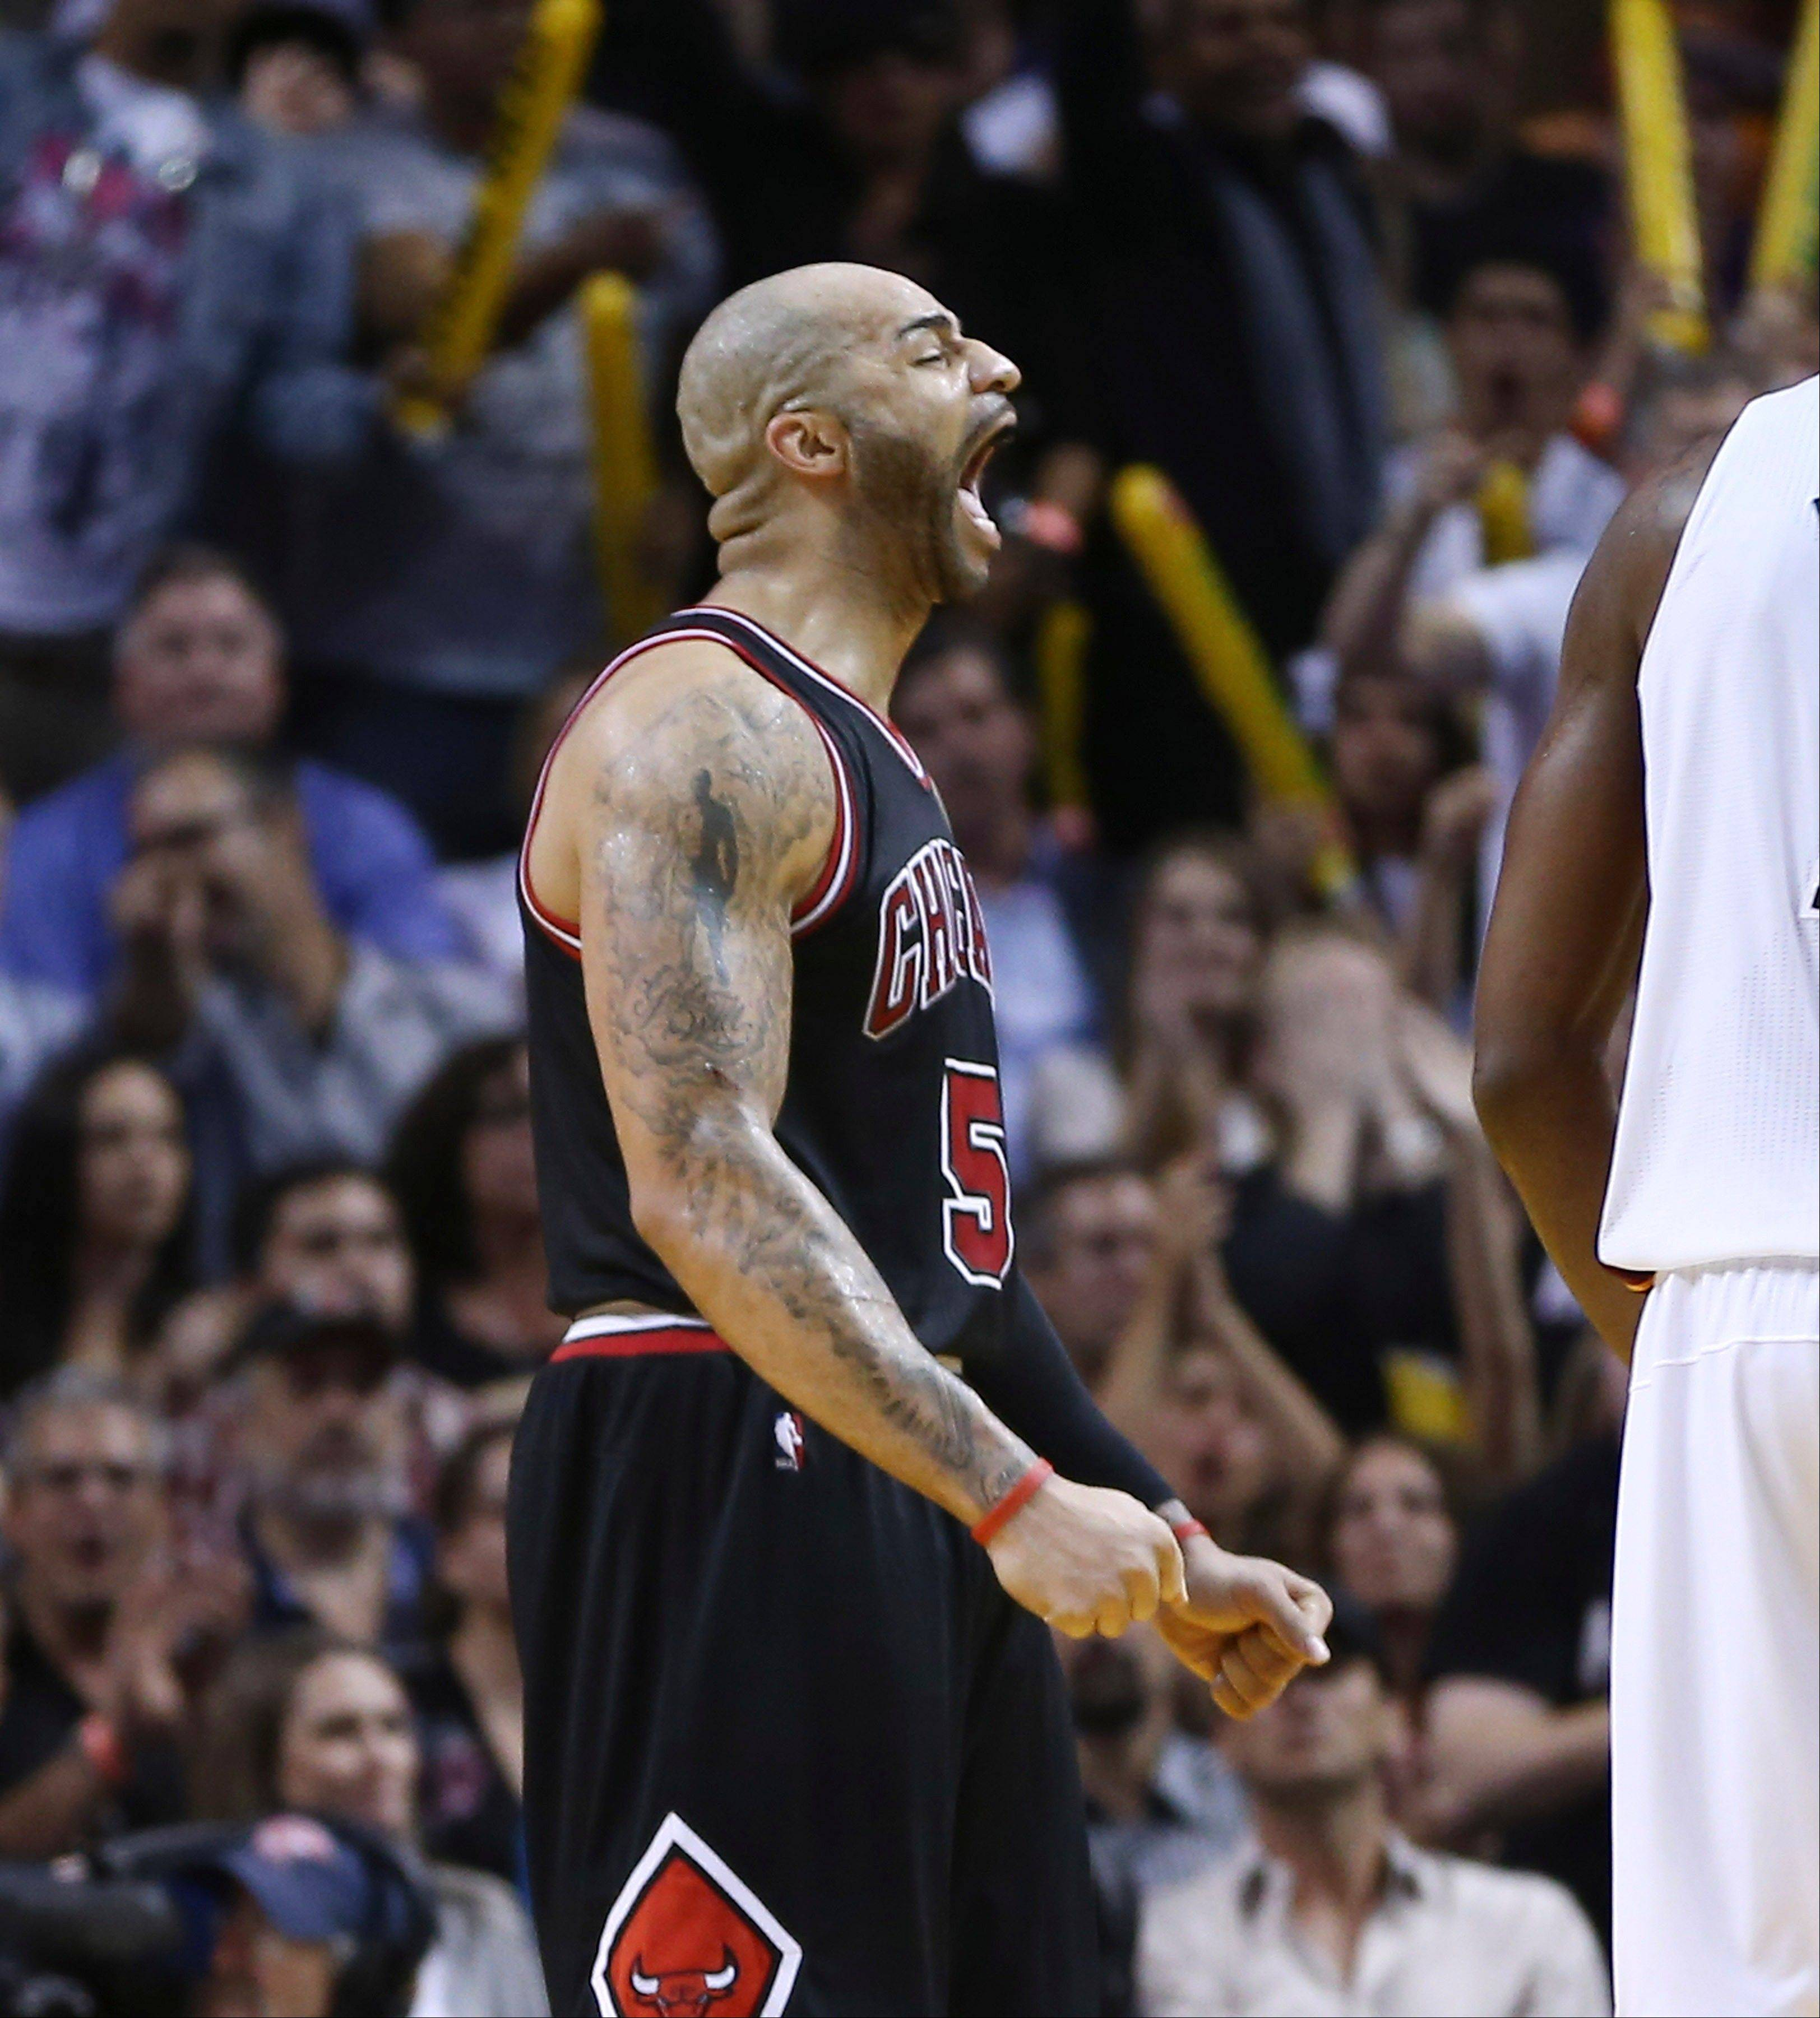 Boozer stepping up play in a big way